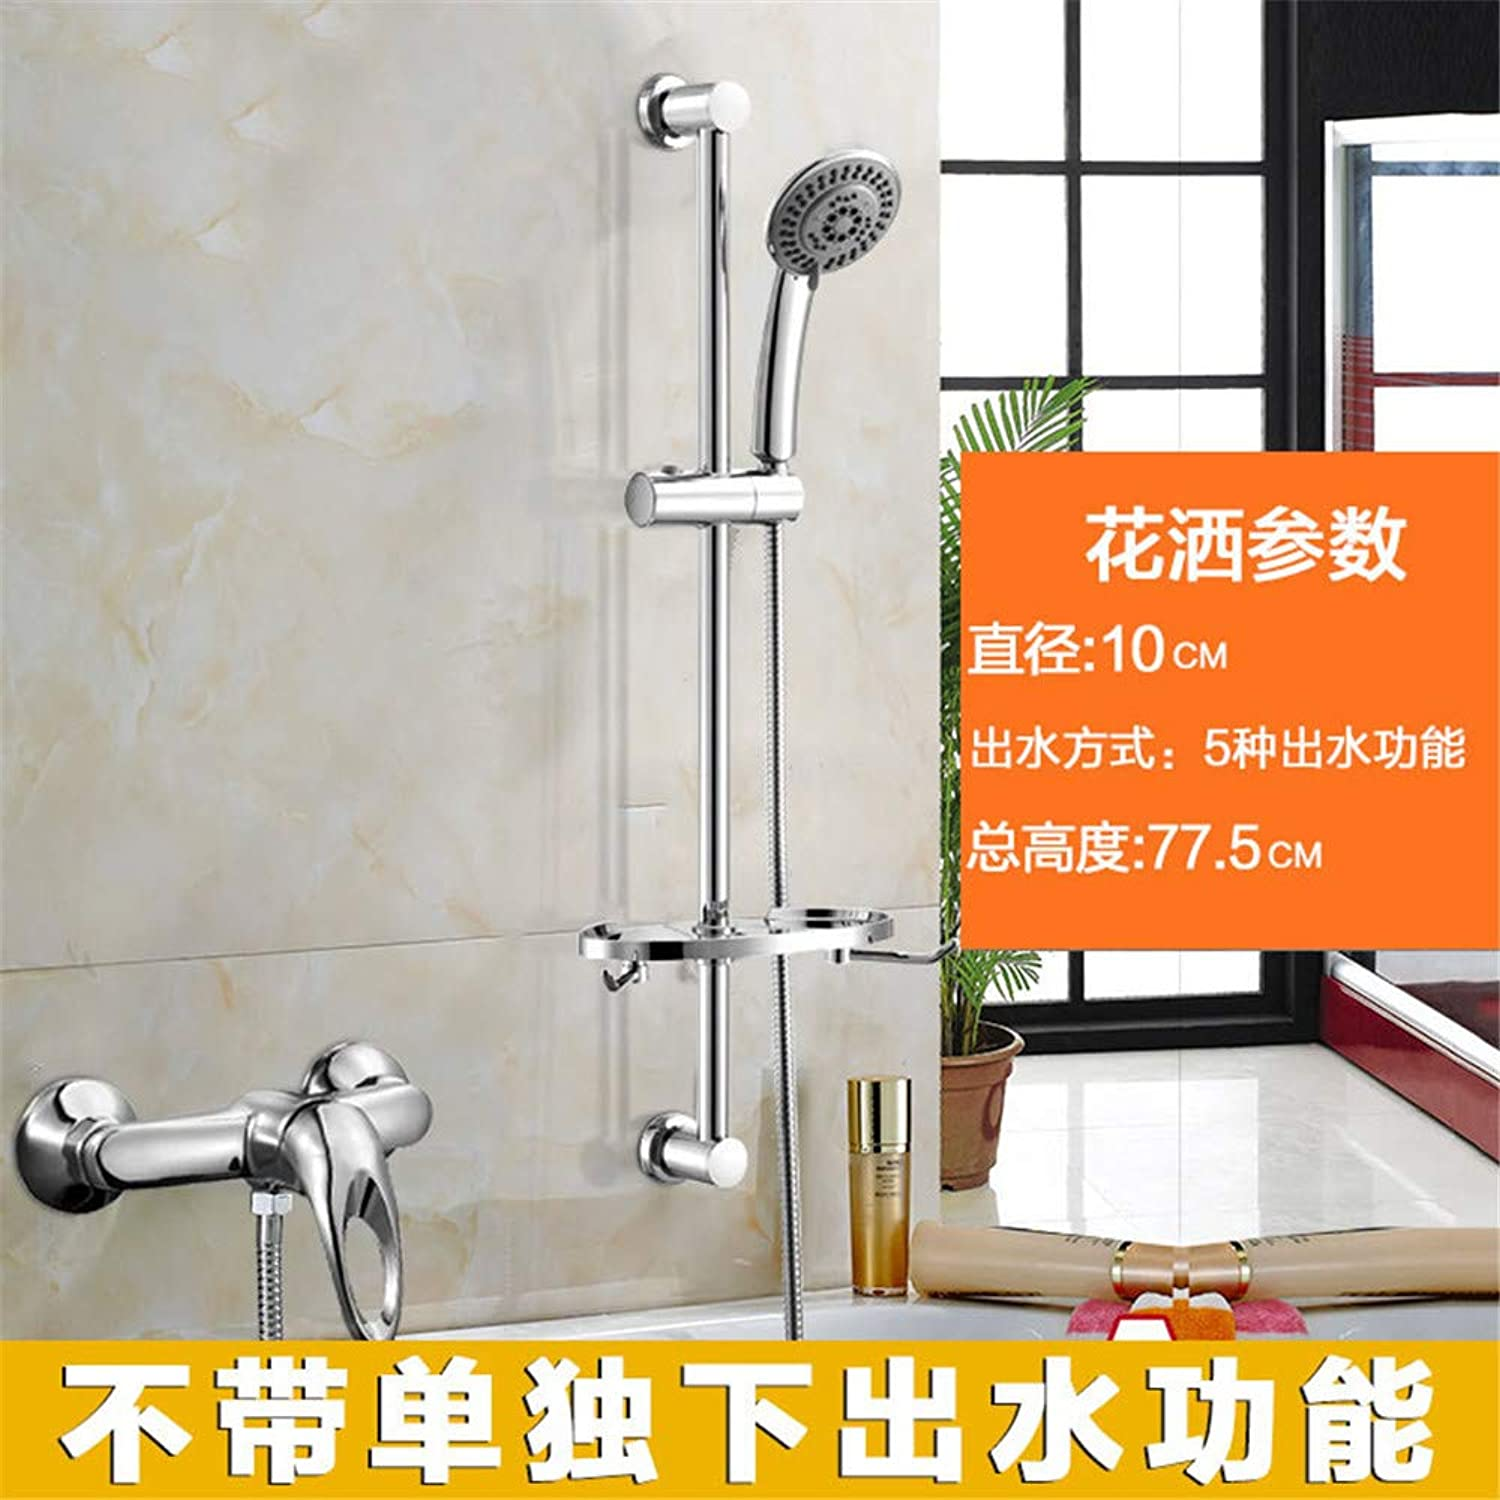 Guolaoer Faucet Simple Shower Lift Shower Set Hot And Cold Mixing Valve???Copper